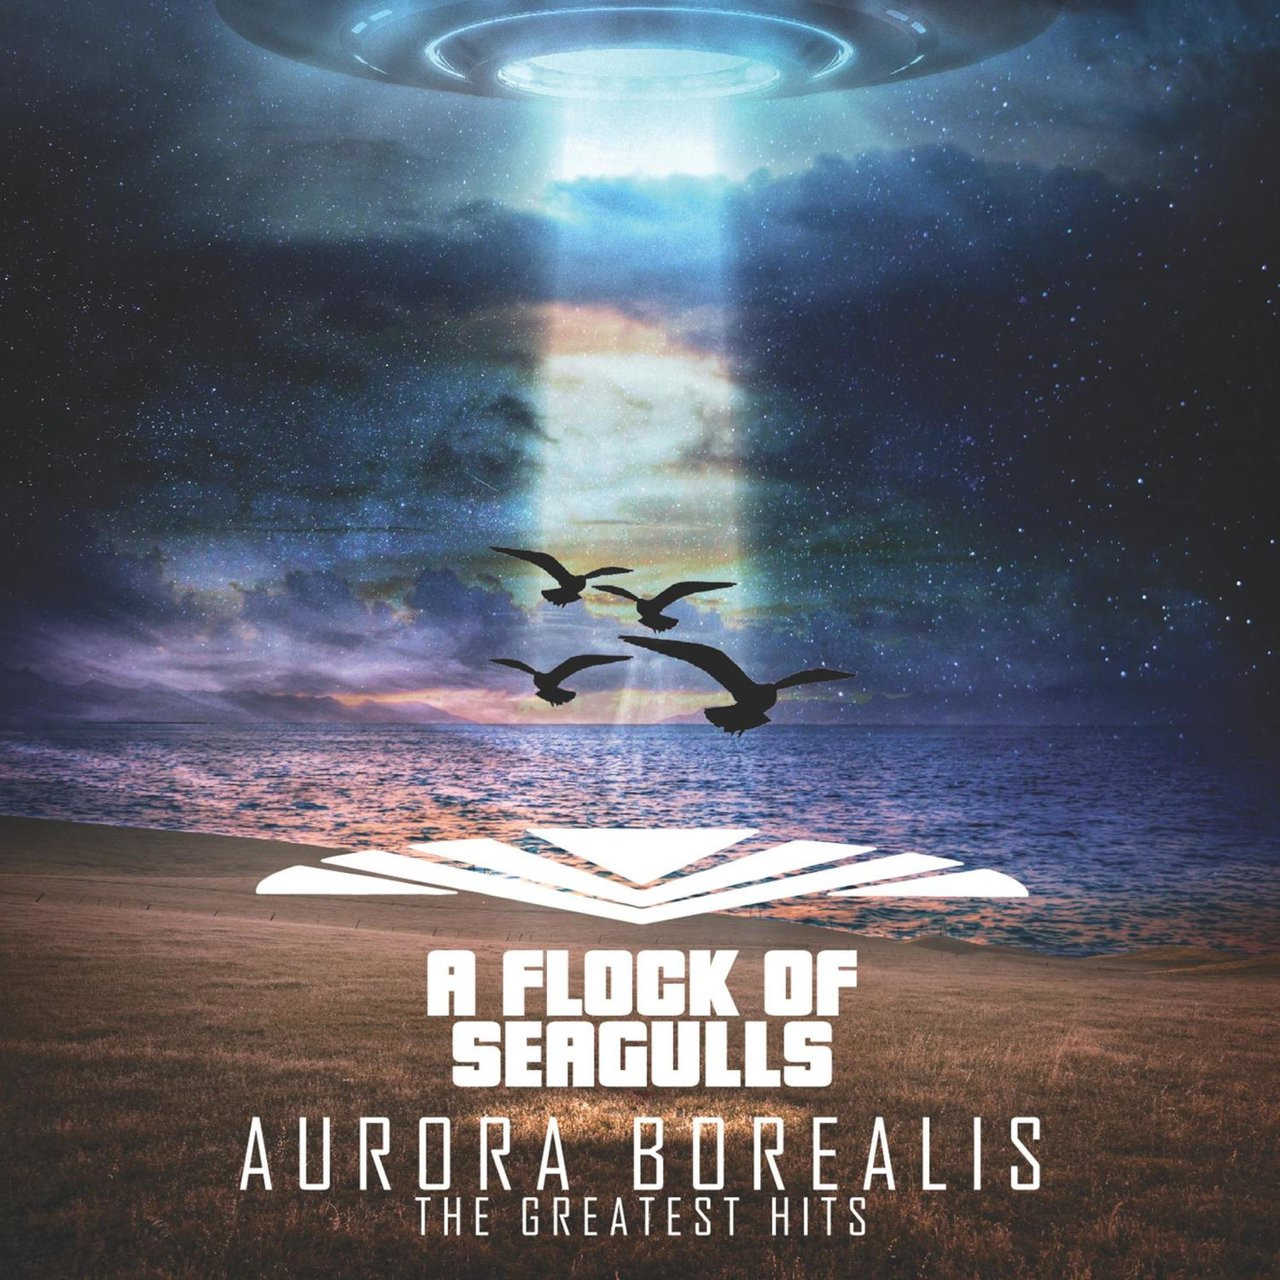 Aurora Borealis - The Greatest Hits